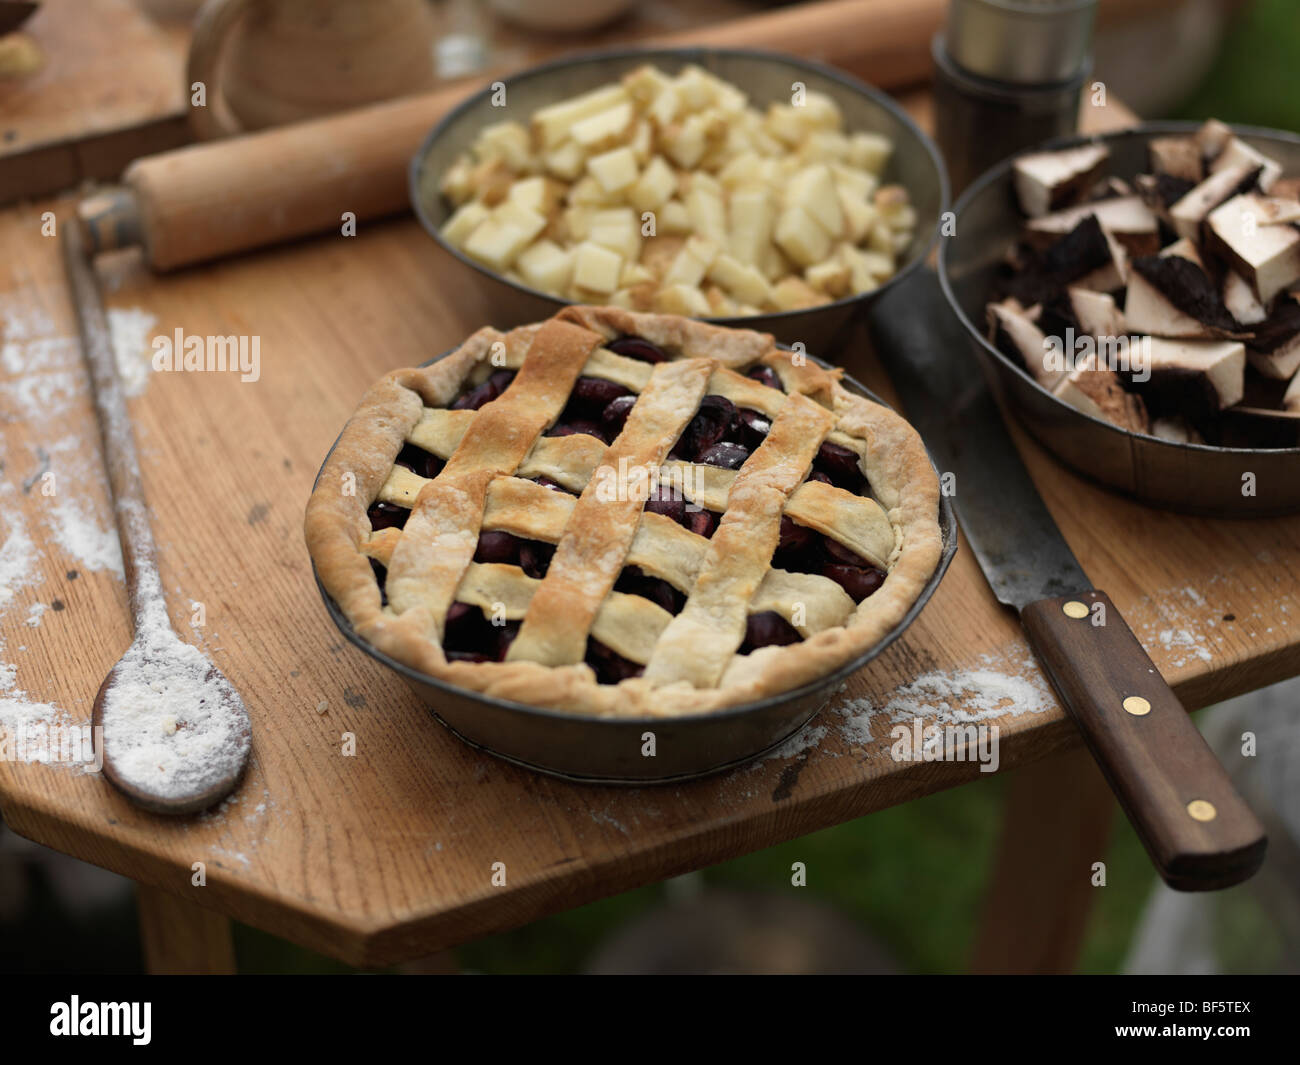 Canada, Ontario, Fort Erie, Old Fort Erie, cherry pie made the old fashion way - Stock Image